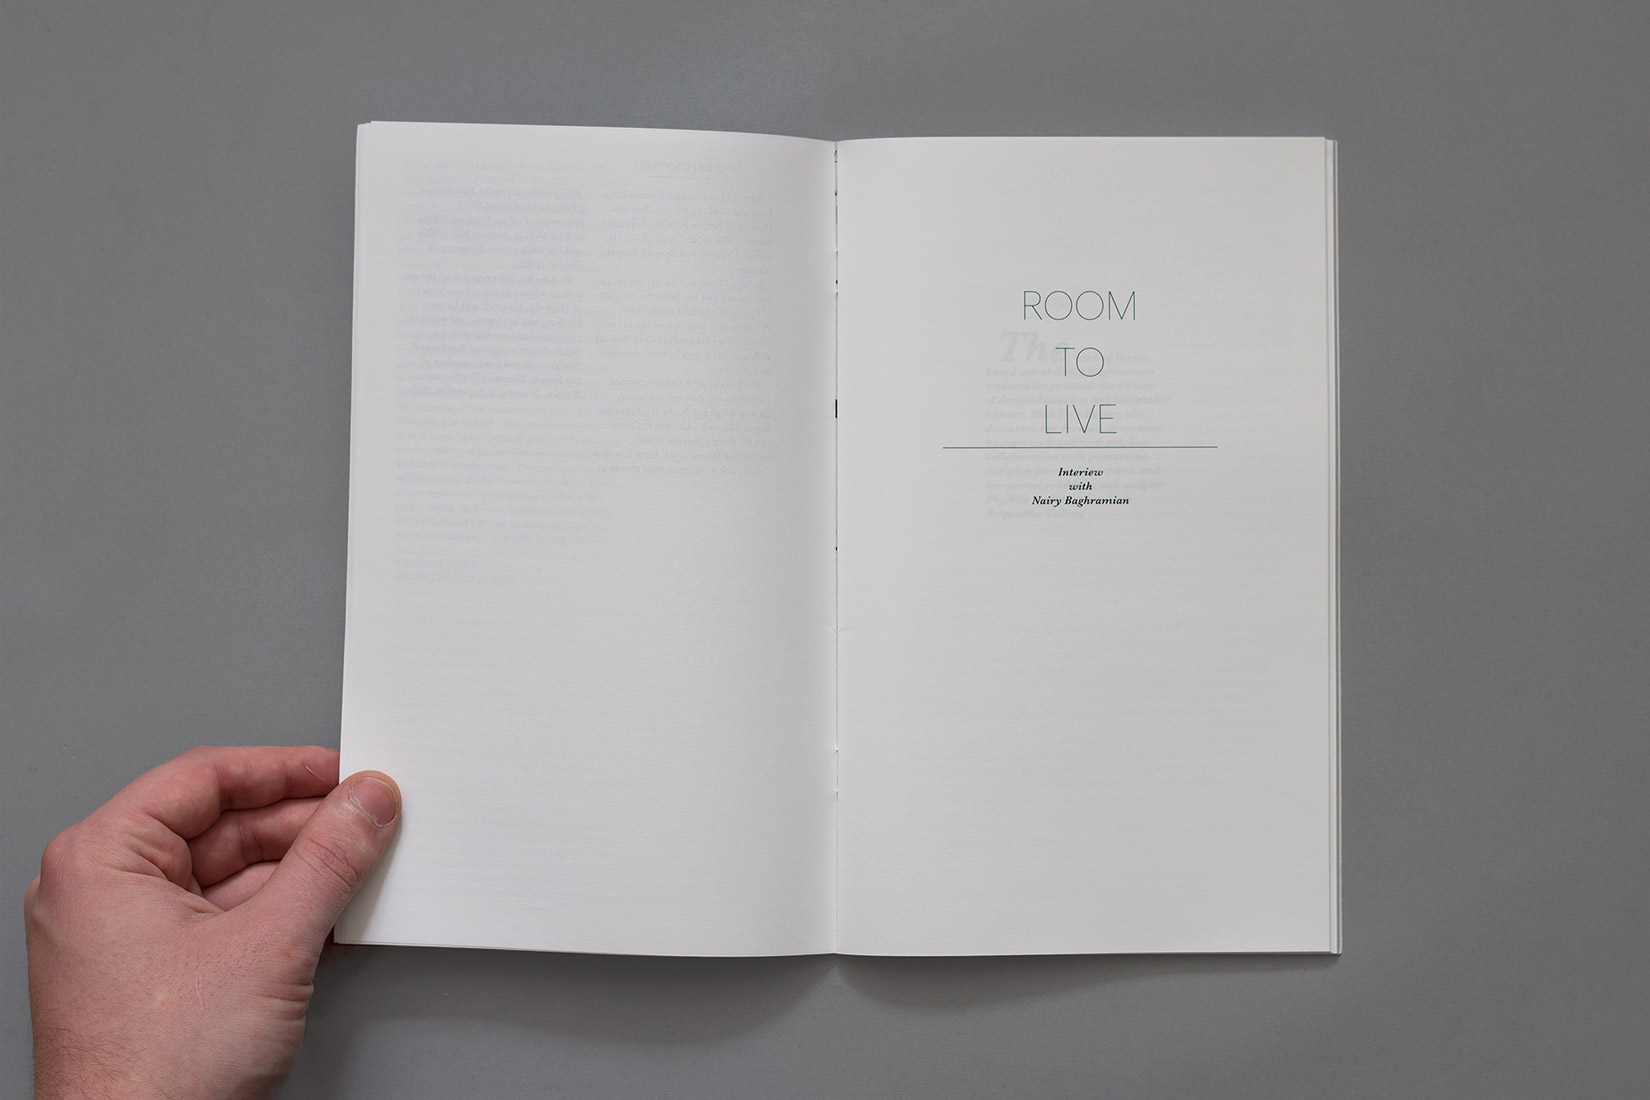 Livre d'artiste, Nairy Baghramian, Room to live